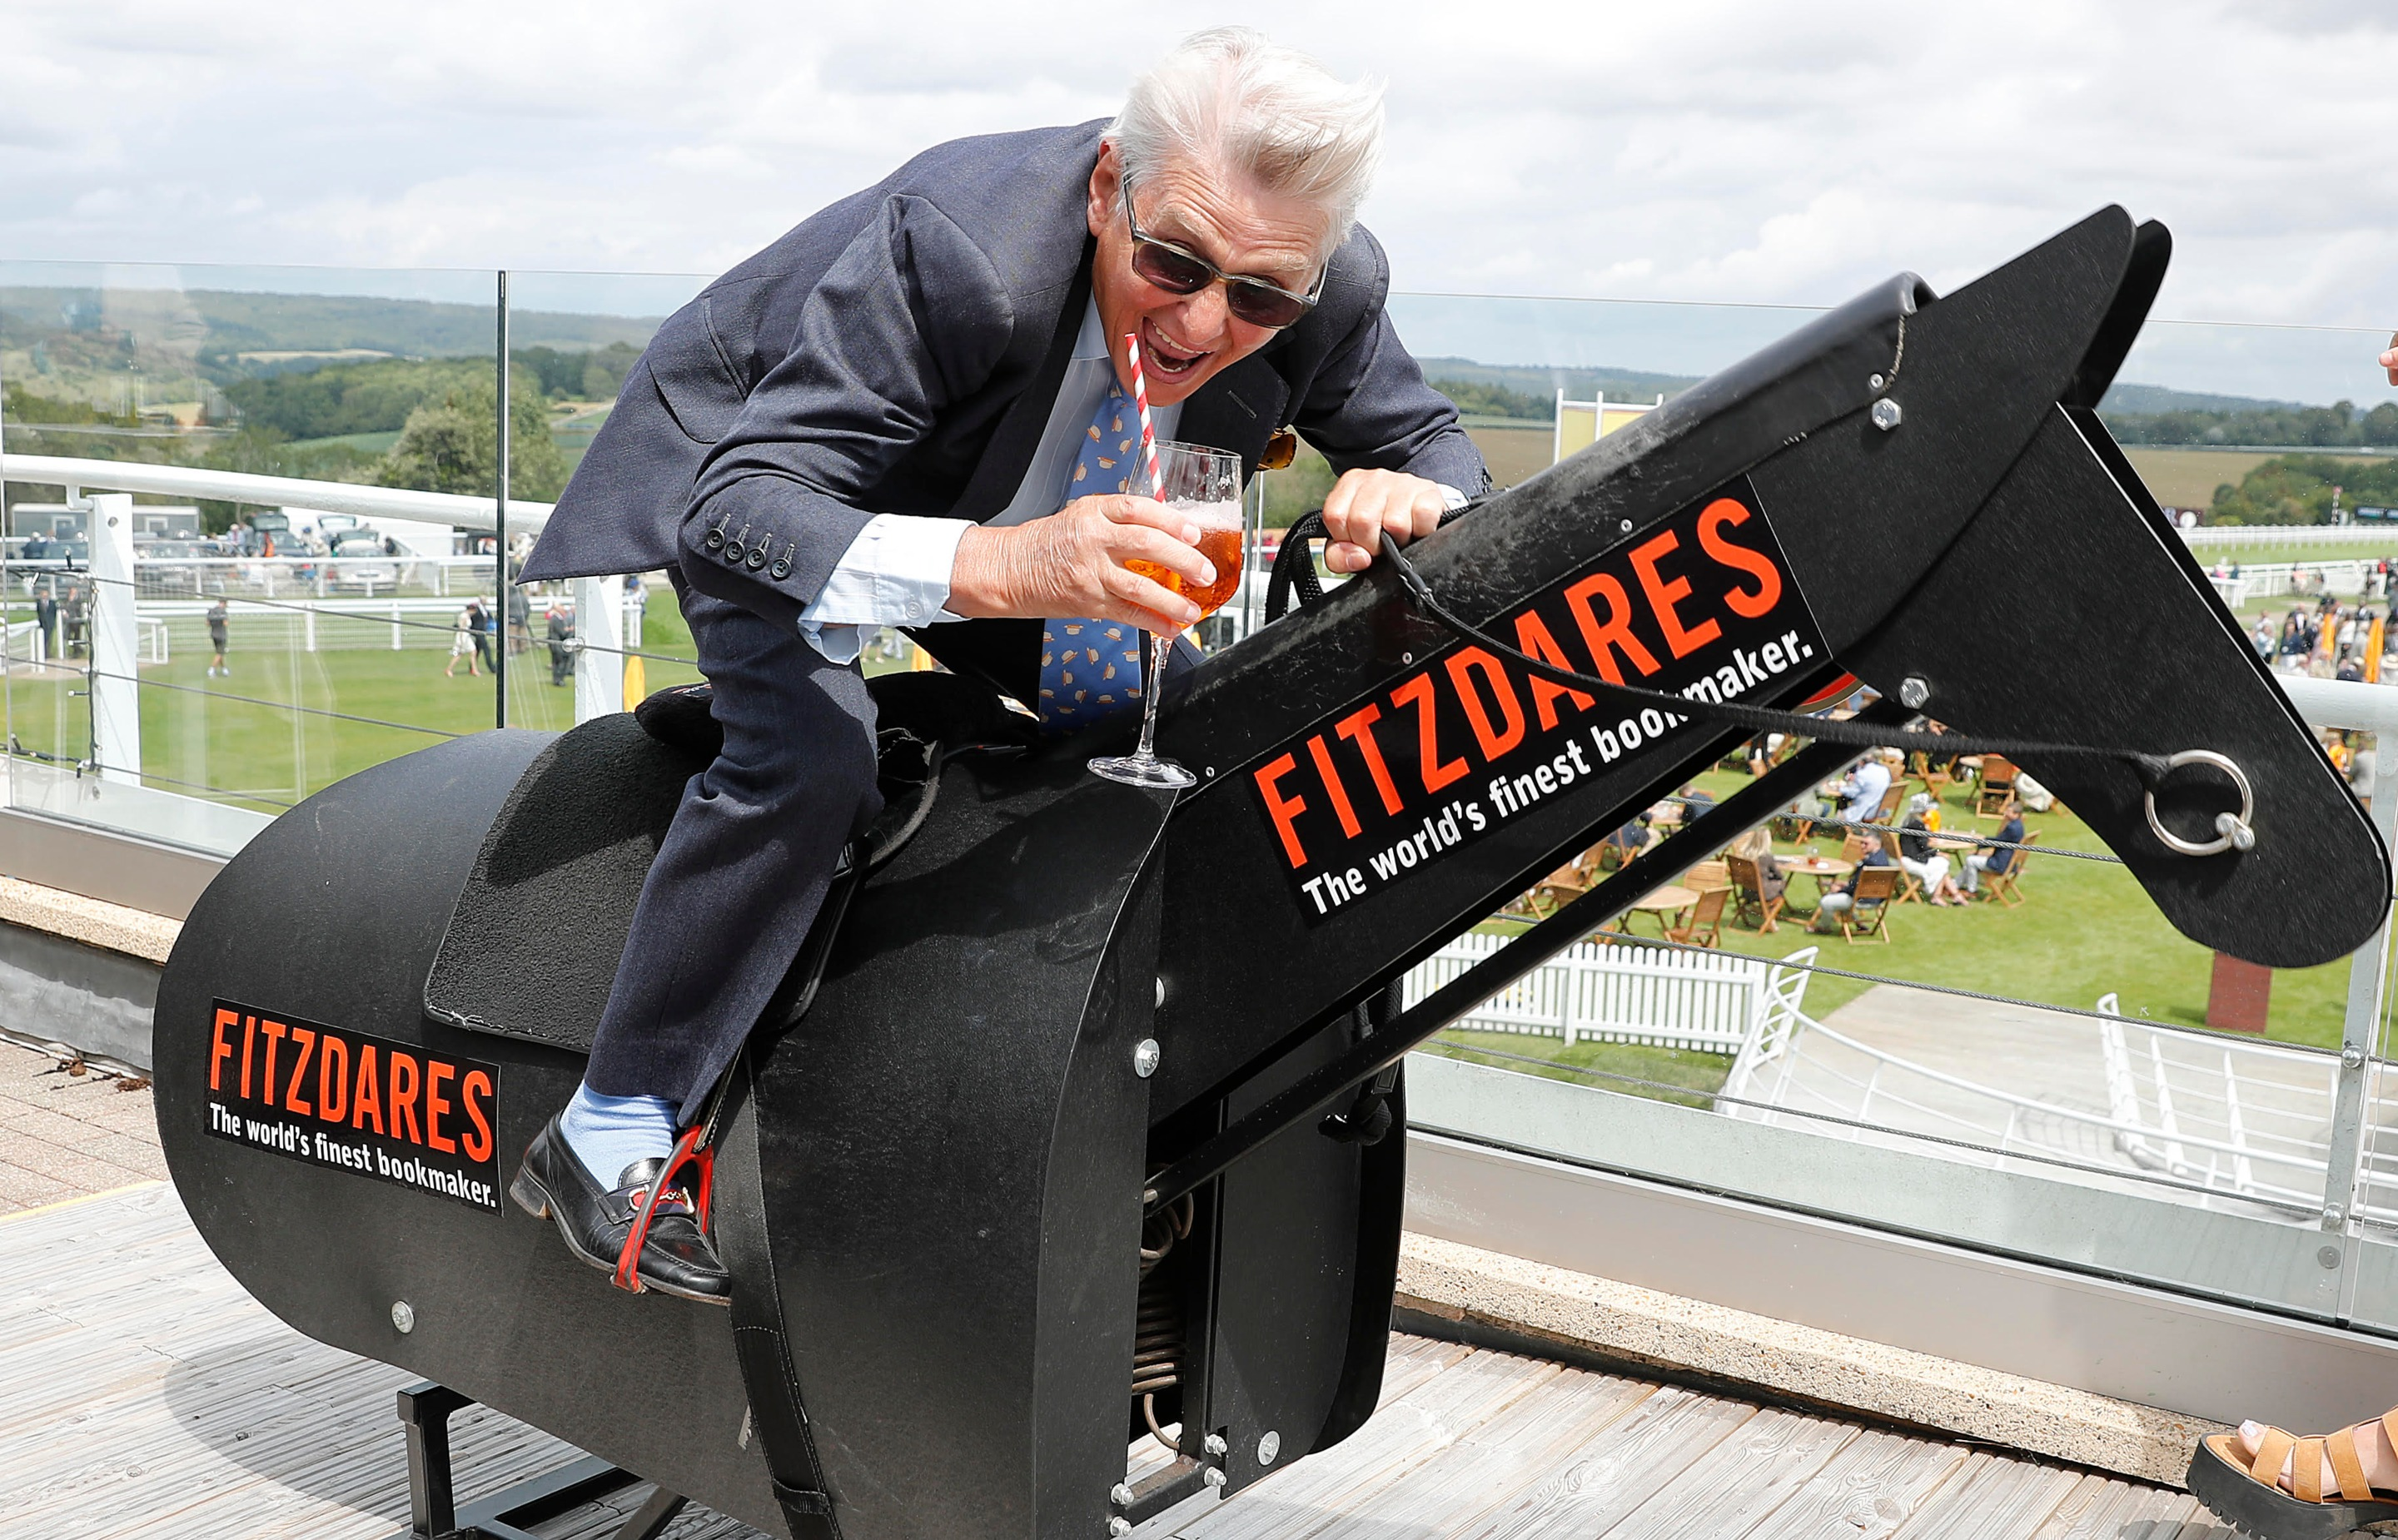 Fitzdares Club set to open in Mayfair